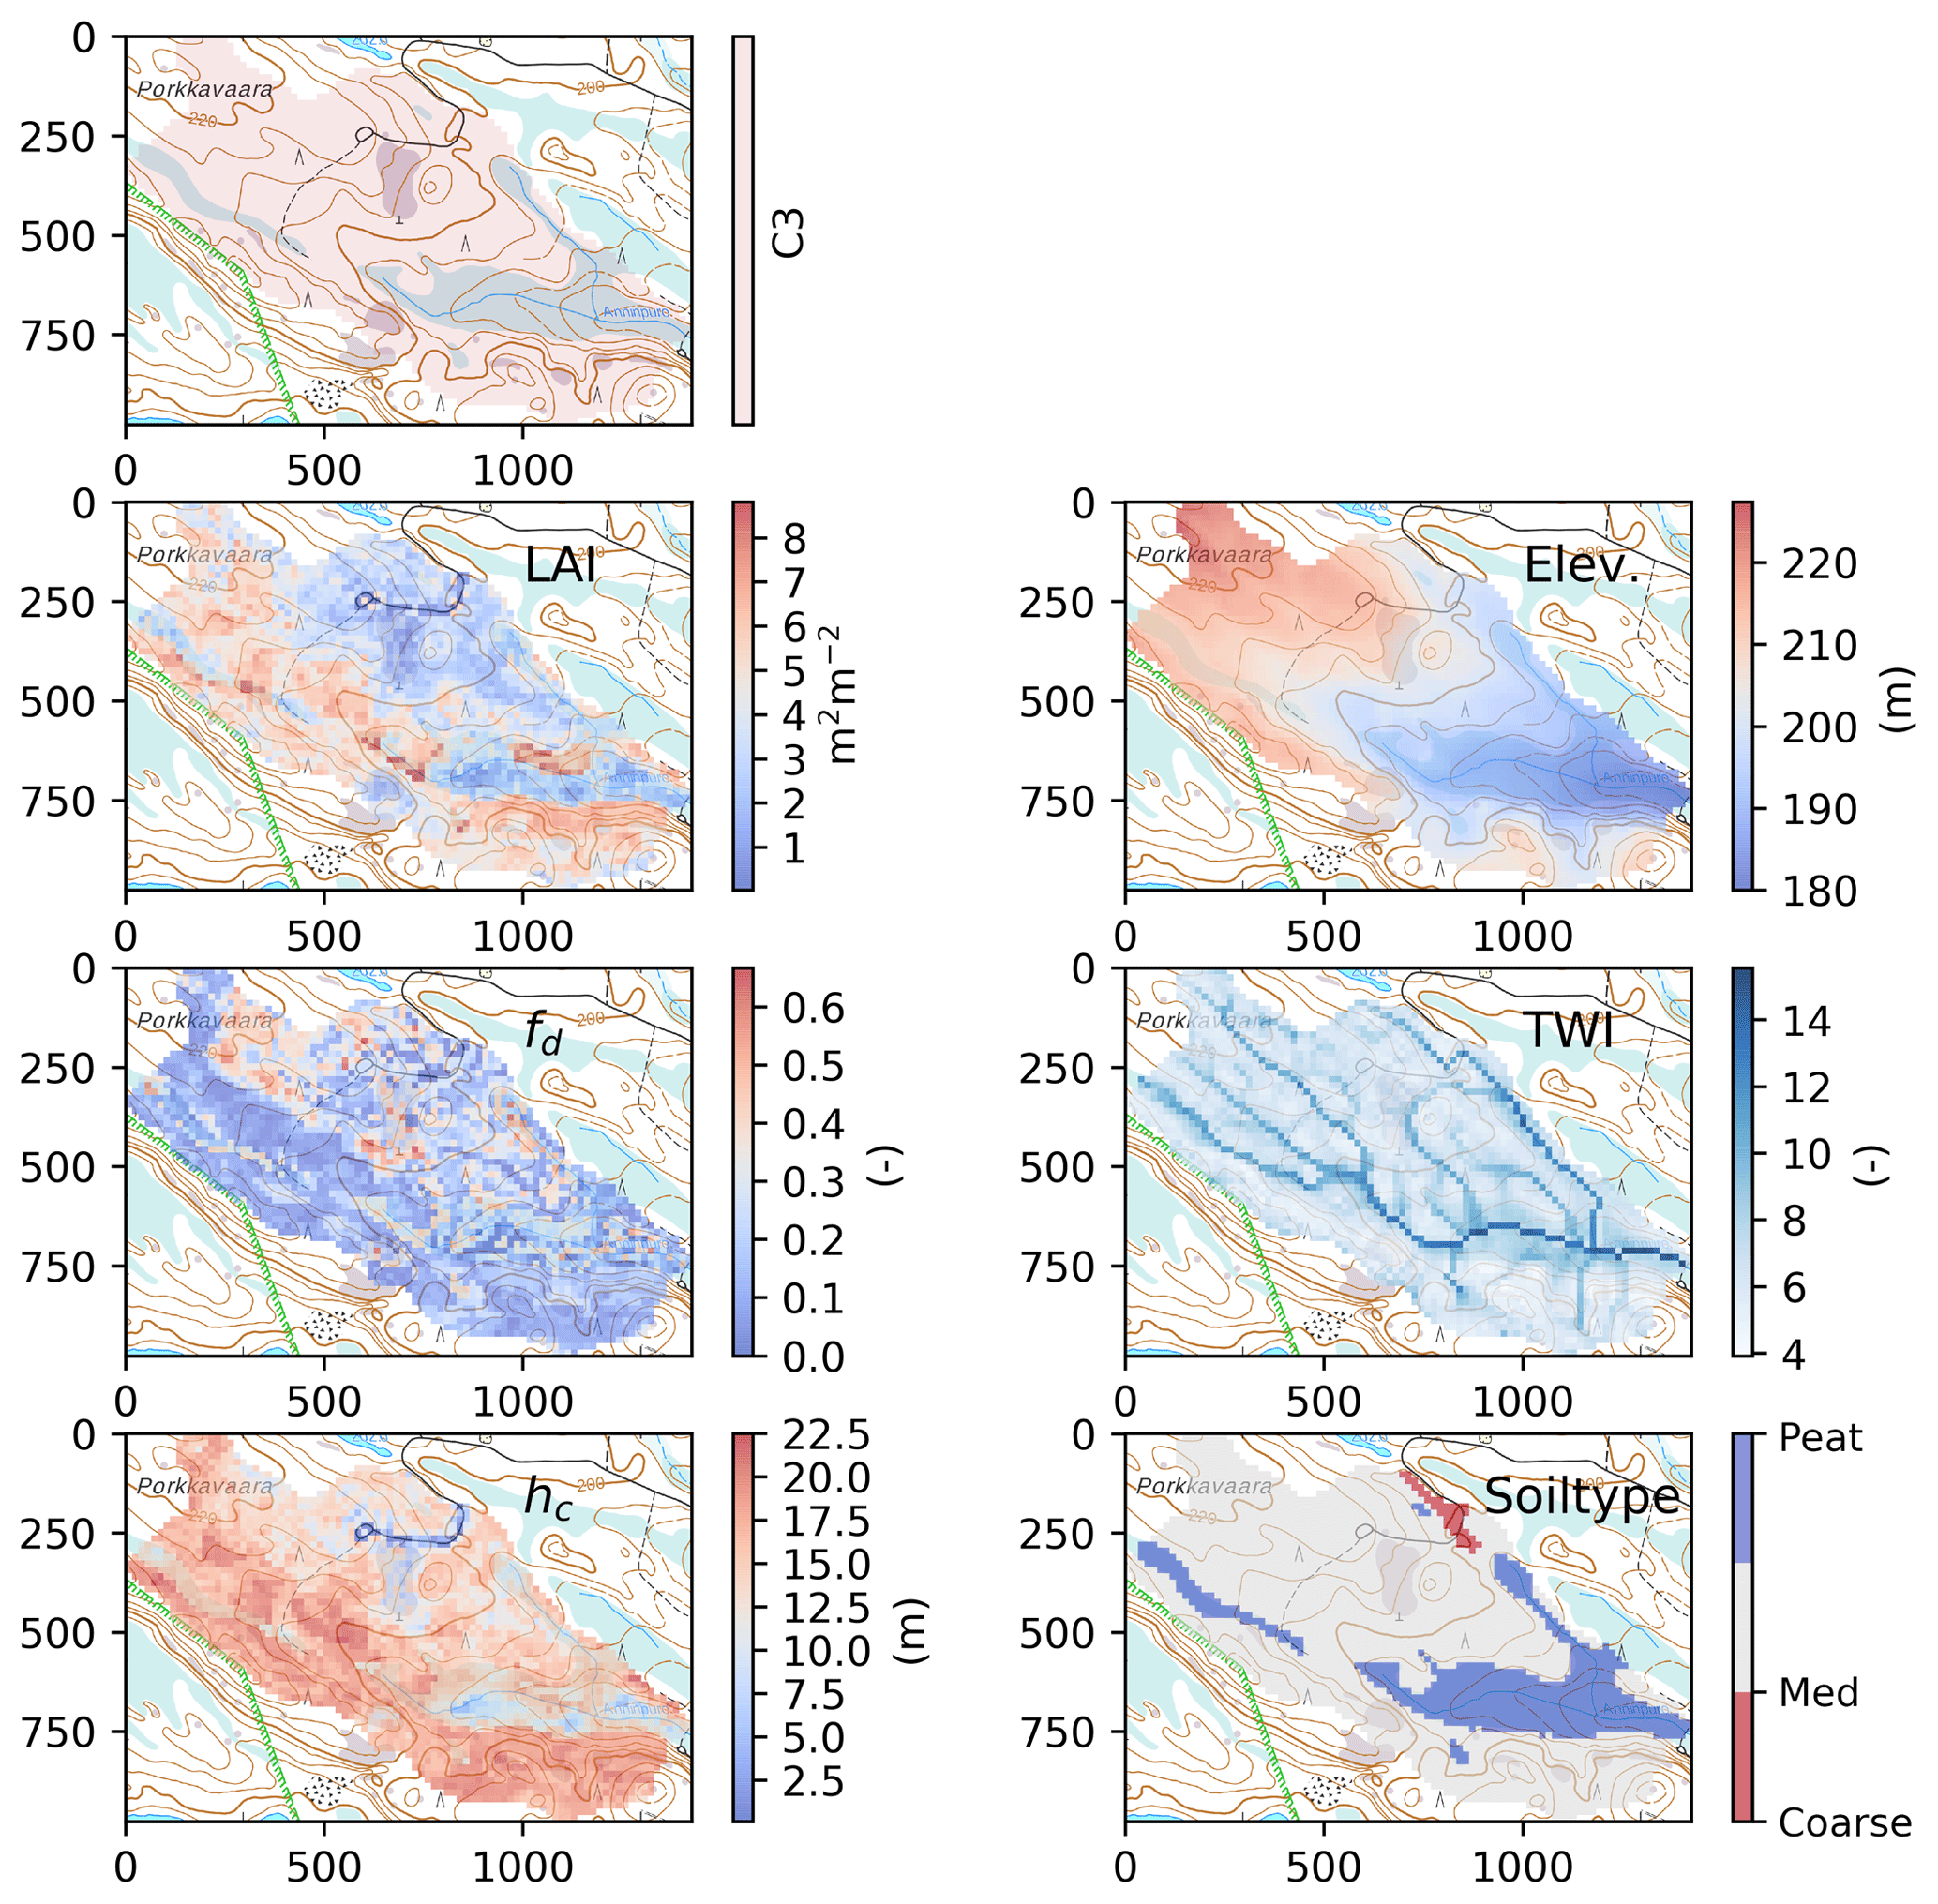 HESS - Modeling boreal forest evapotranspiration and water